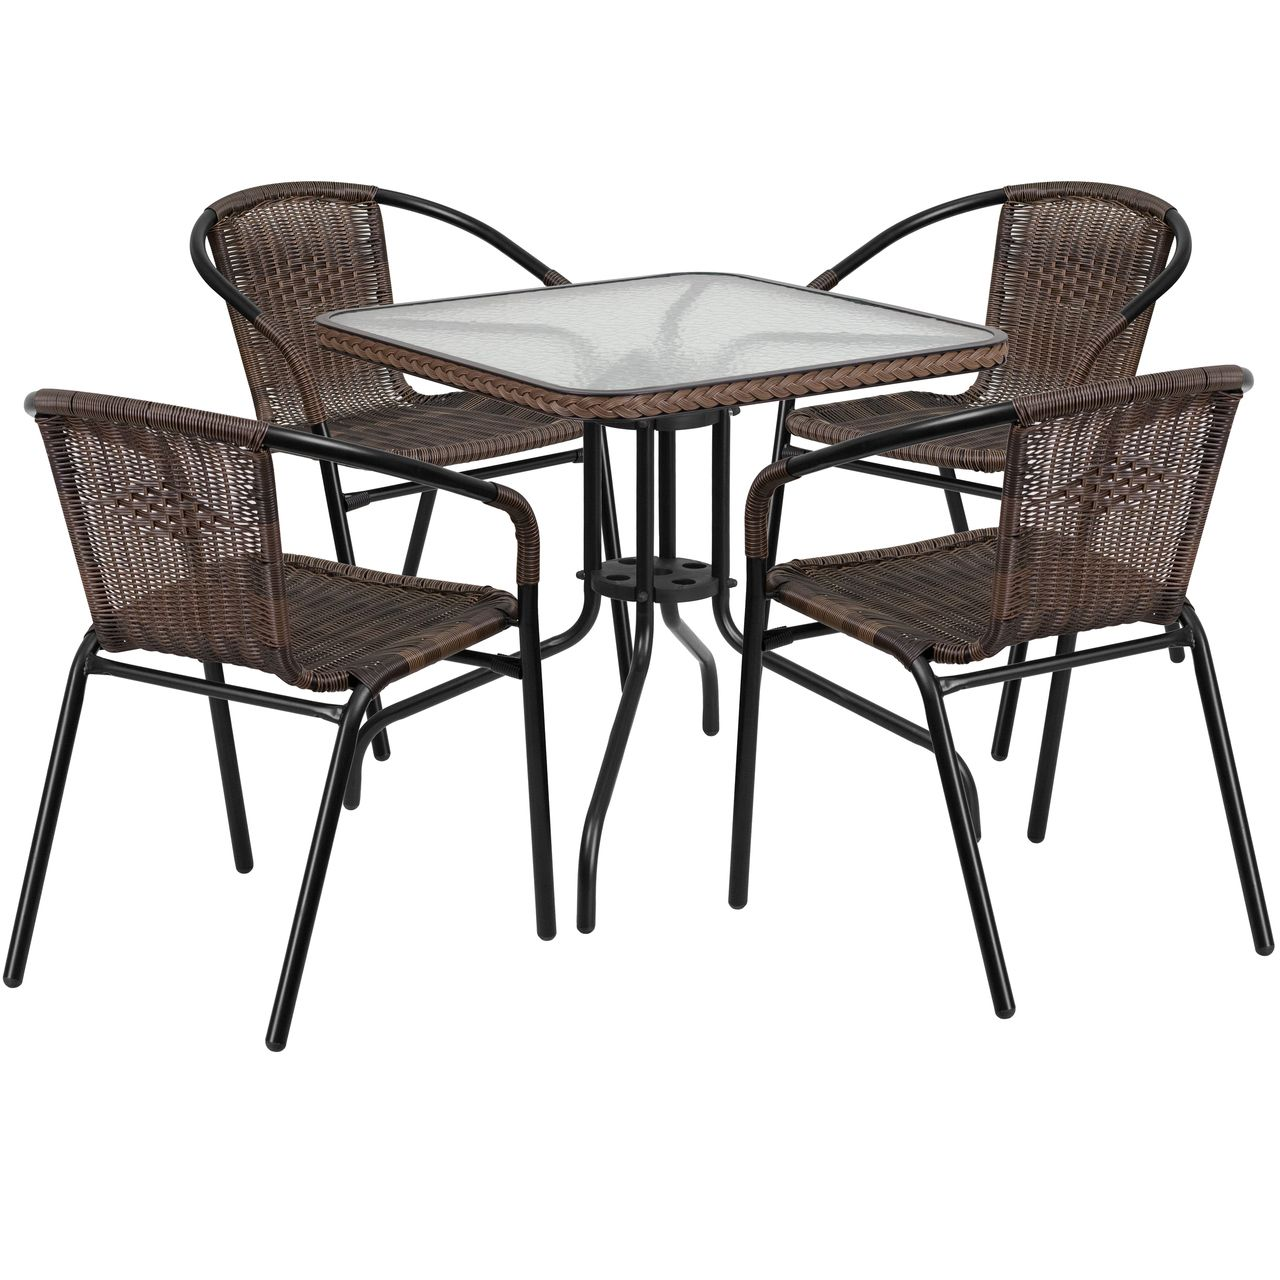 buy 28 square glass metal table with dark brown rattan edging and rh pinterest com